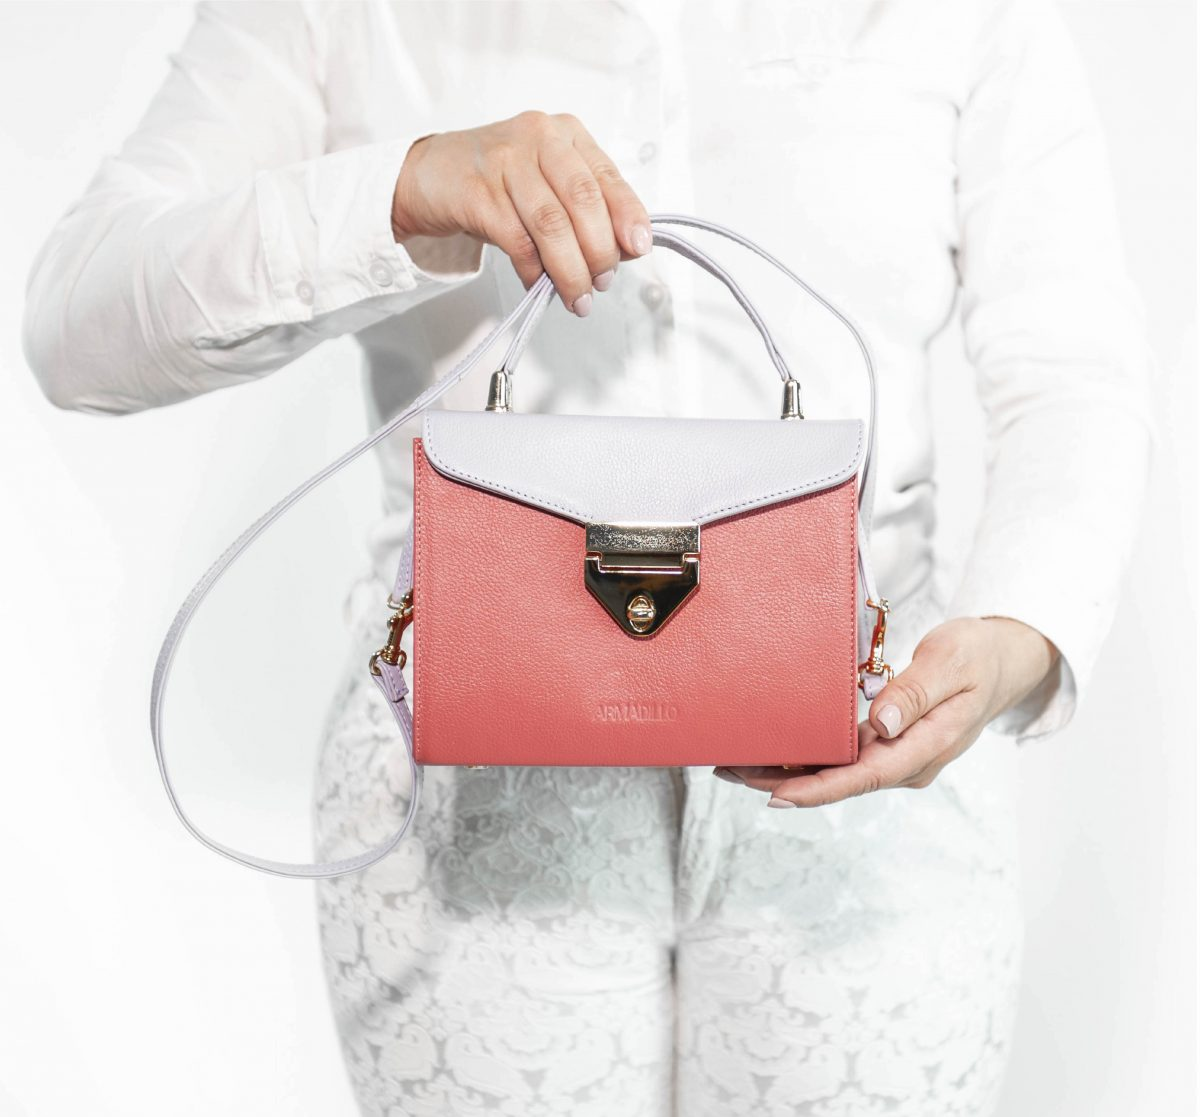 armadillo-leather-handbags-totes-wallets-clutches-backpack-small-leather-goods-accessories-office-travel-gifts-in-canada-img-slide-handbag-kate-spade-chain-mini-purse-lillac-coral